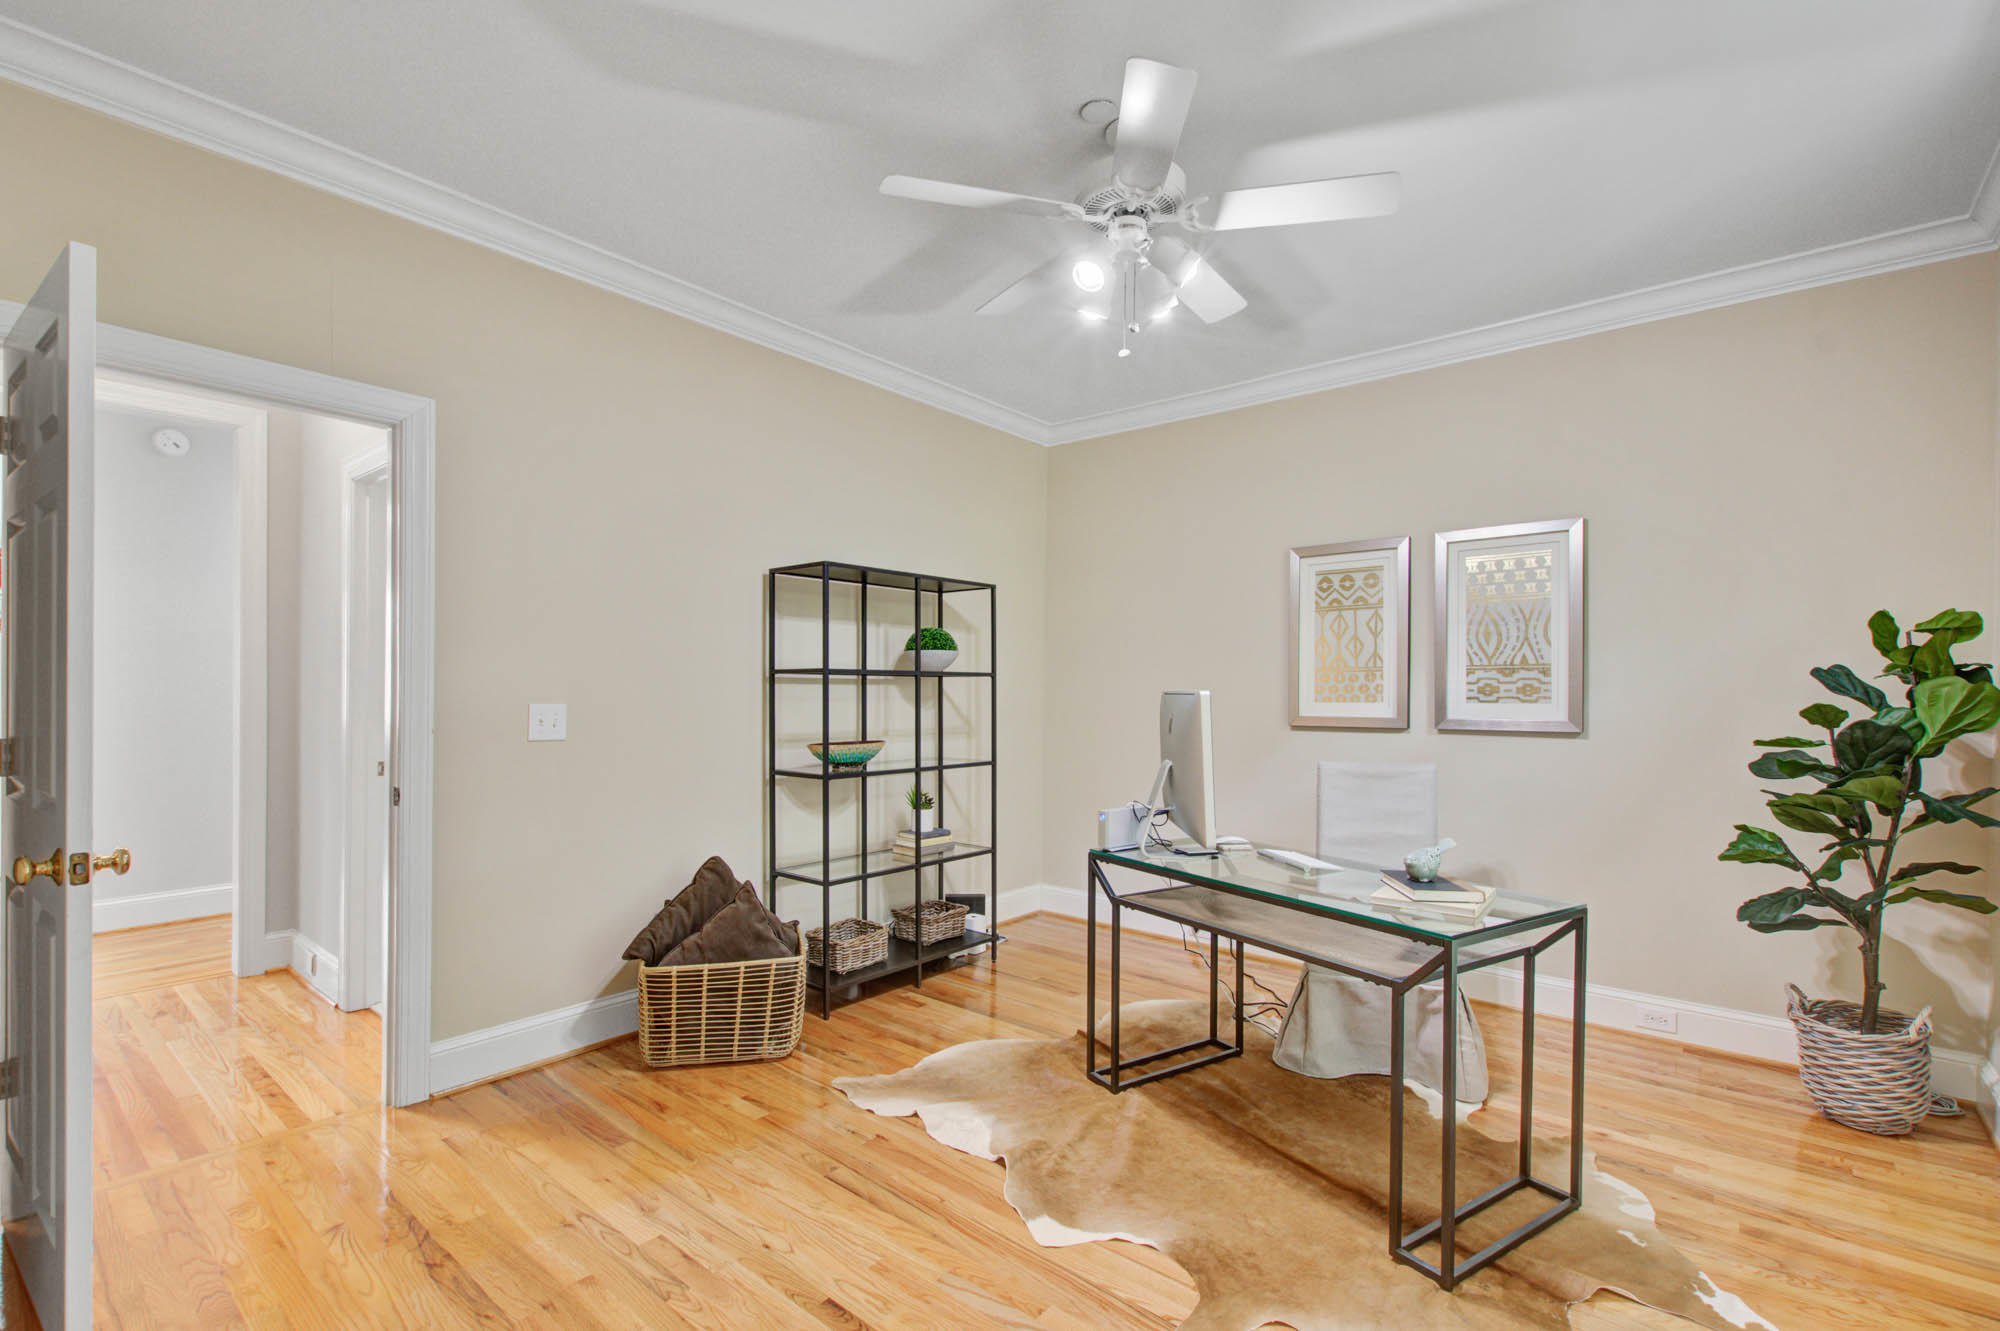 Dunes West Homes For Sale - 2069 Shell Ring, Mount Pleasant, SC - 35